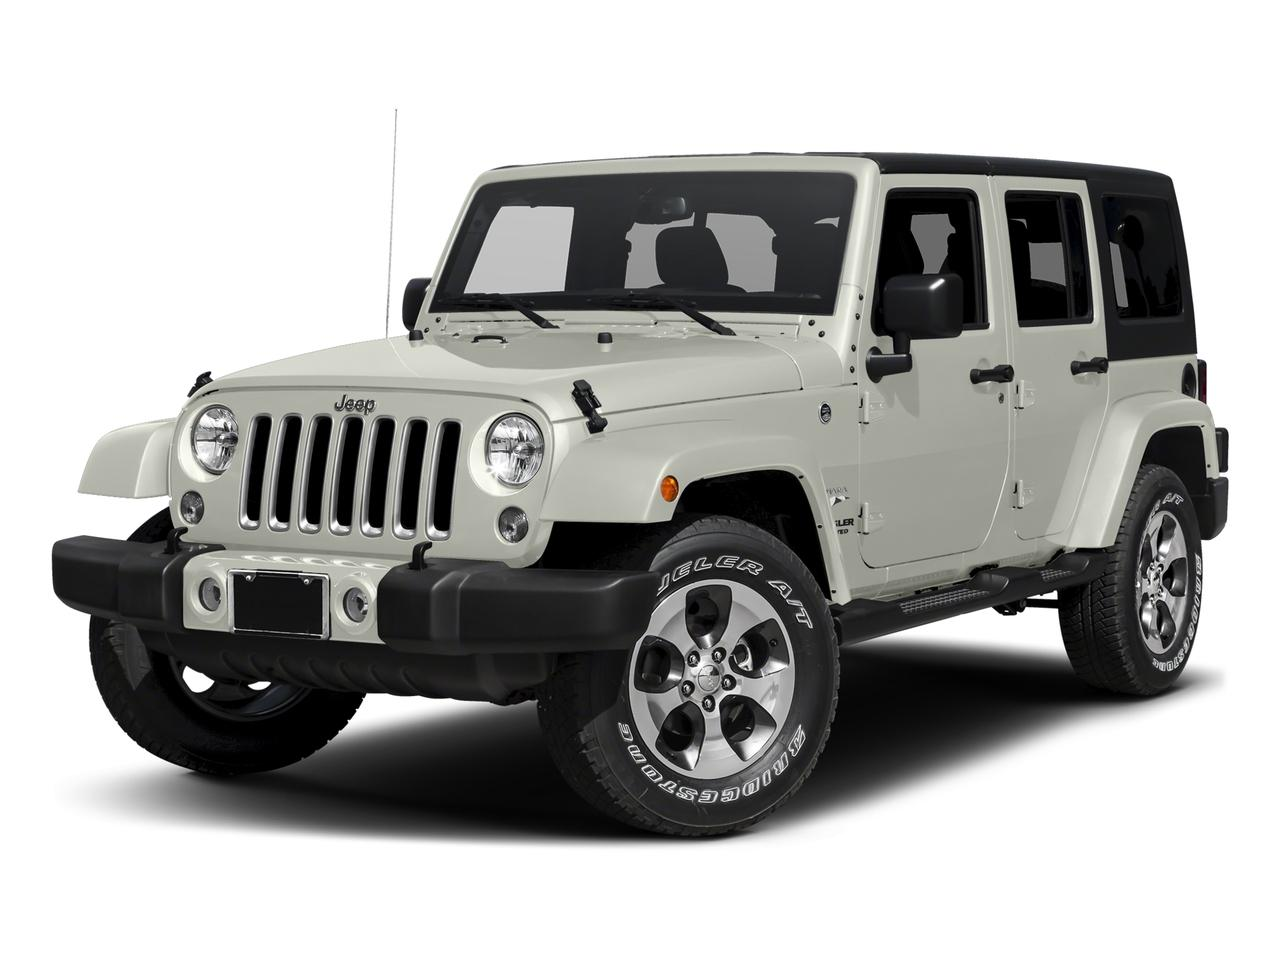 2016 Jeep Wrangler Unlimited Vehicle Photo in BOONVILLE, IN 47601-9633